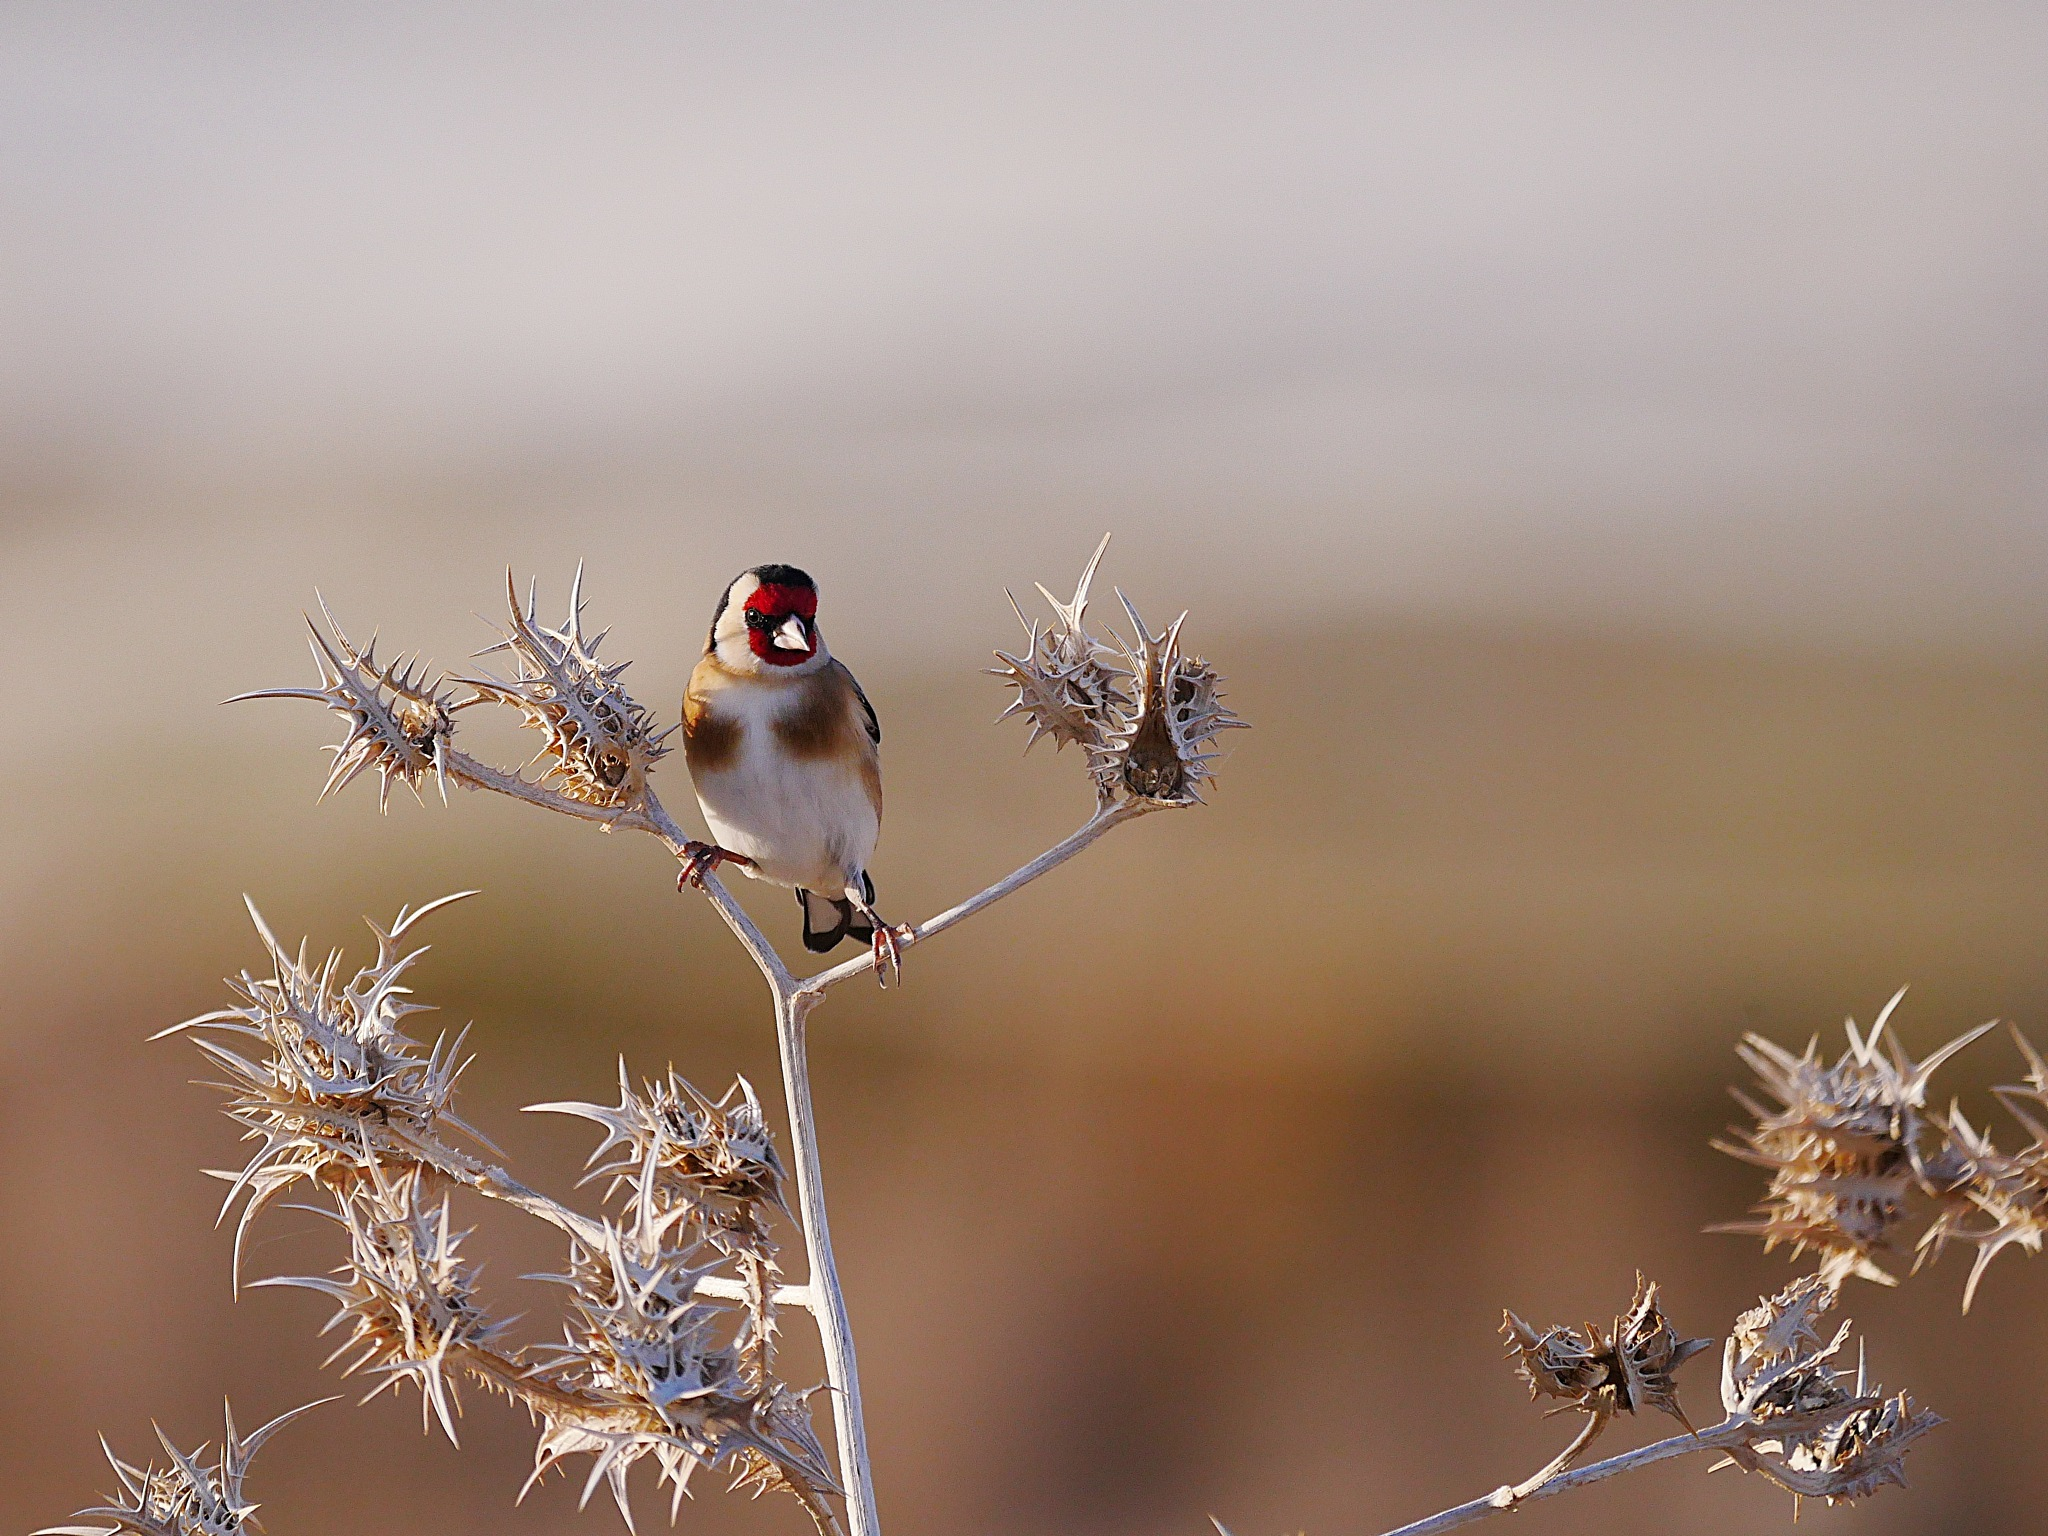 Goldfinch on a thorned bush by ilanhorn